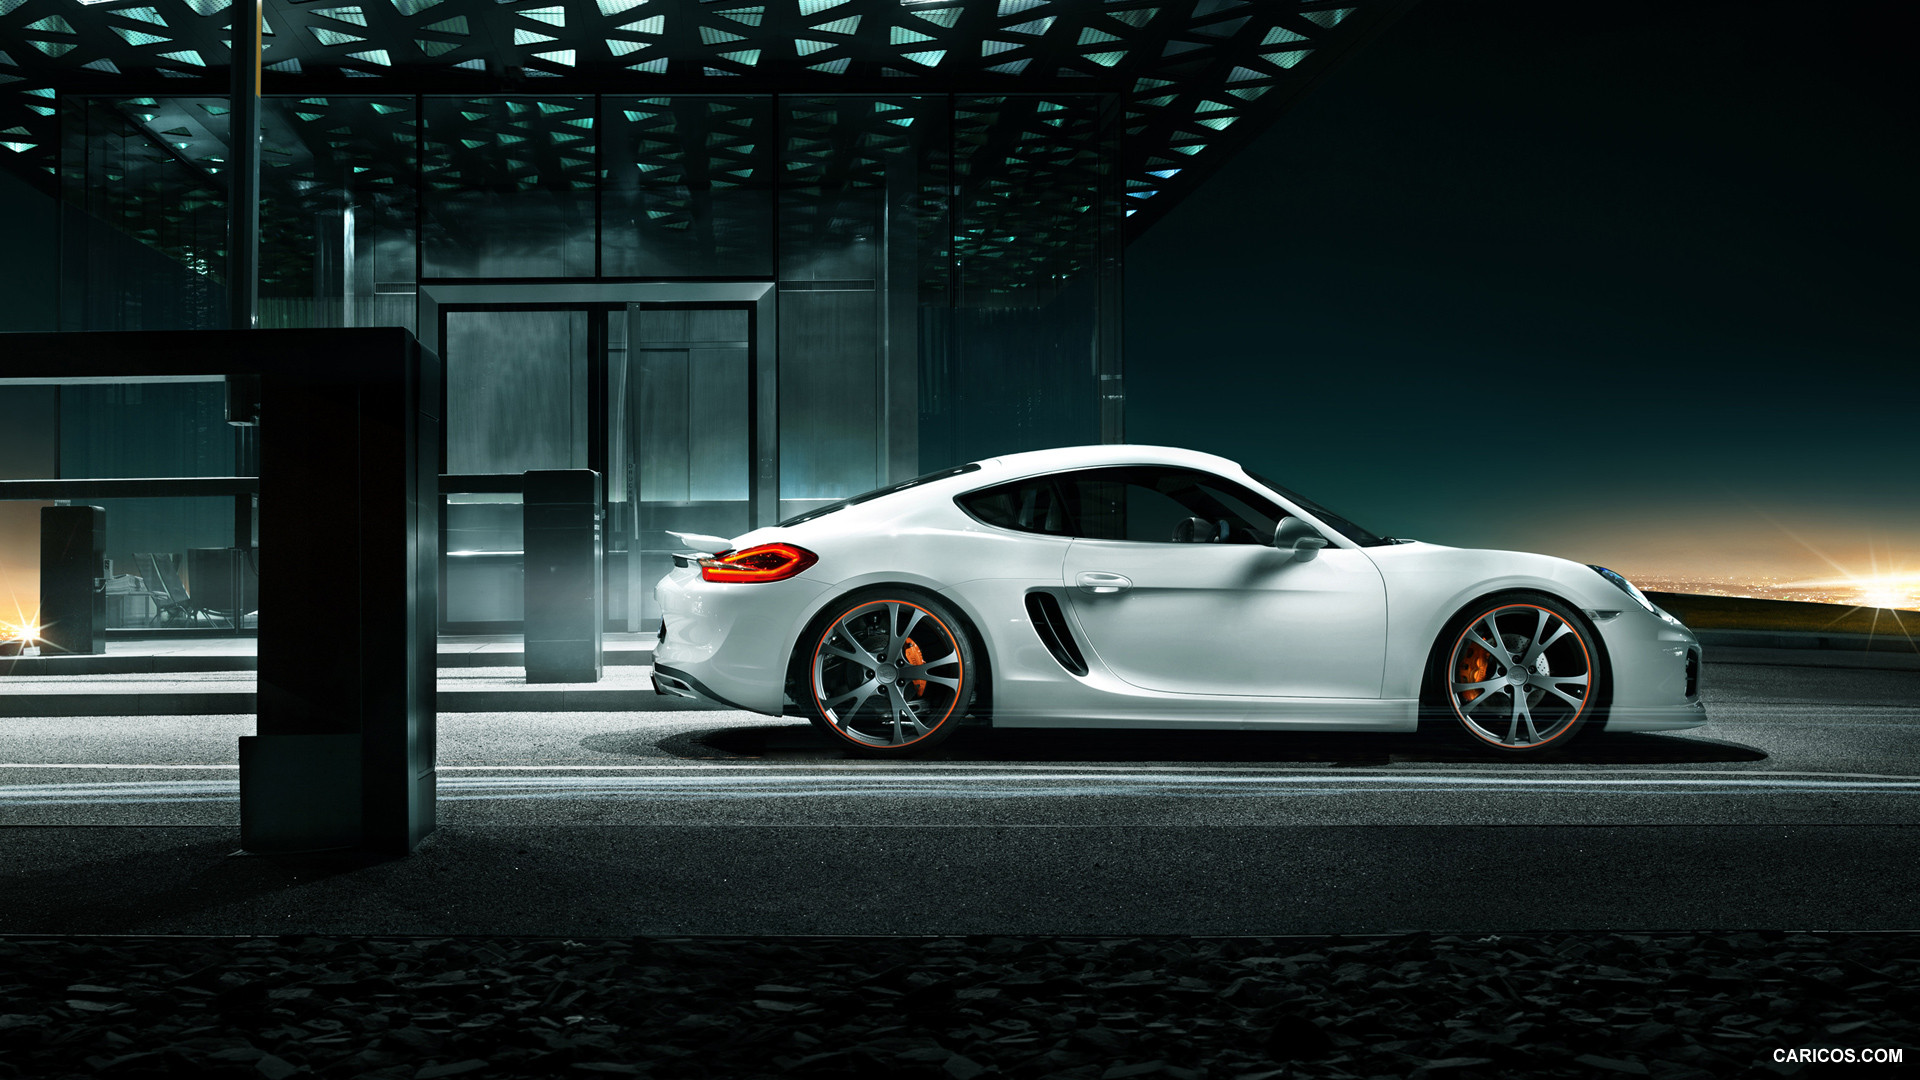 1920x1080 - Porsche Cayman Wallpapers 15